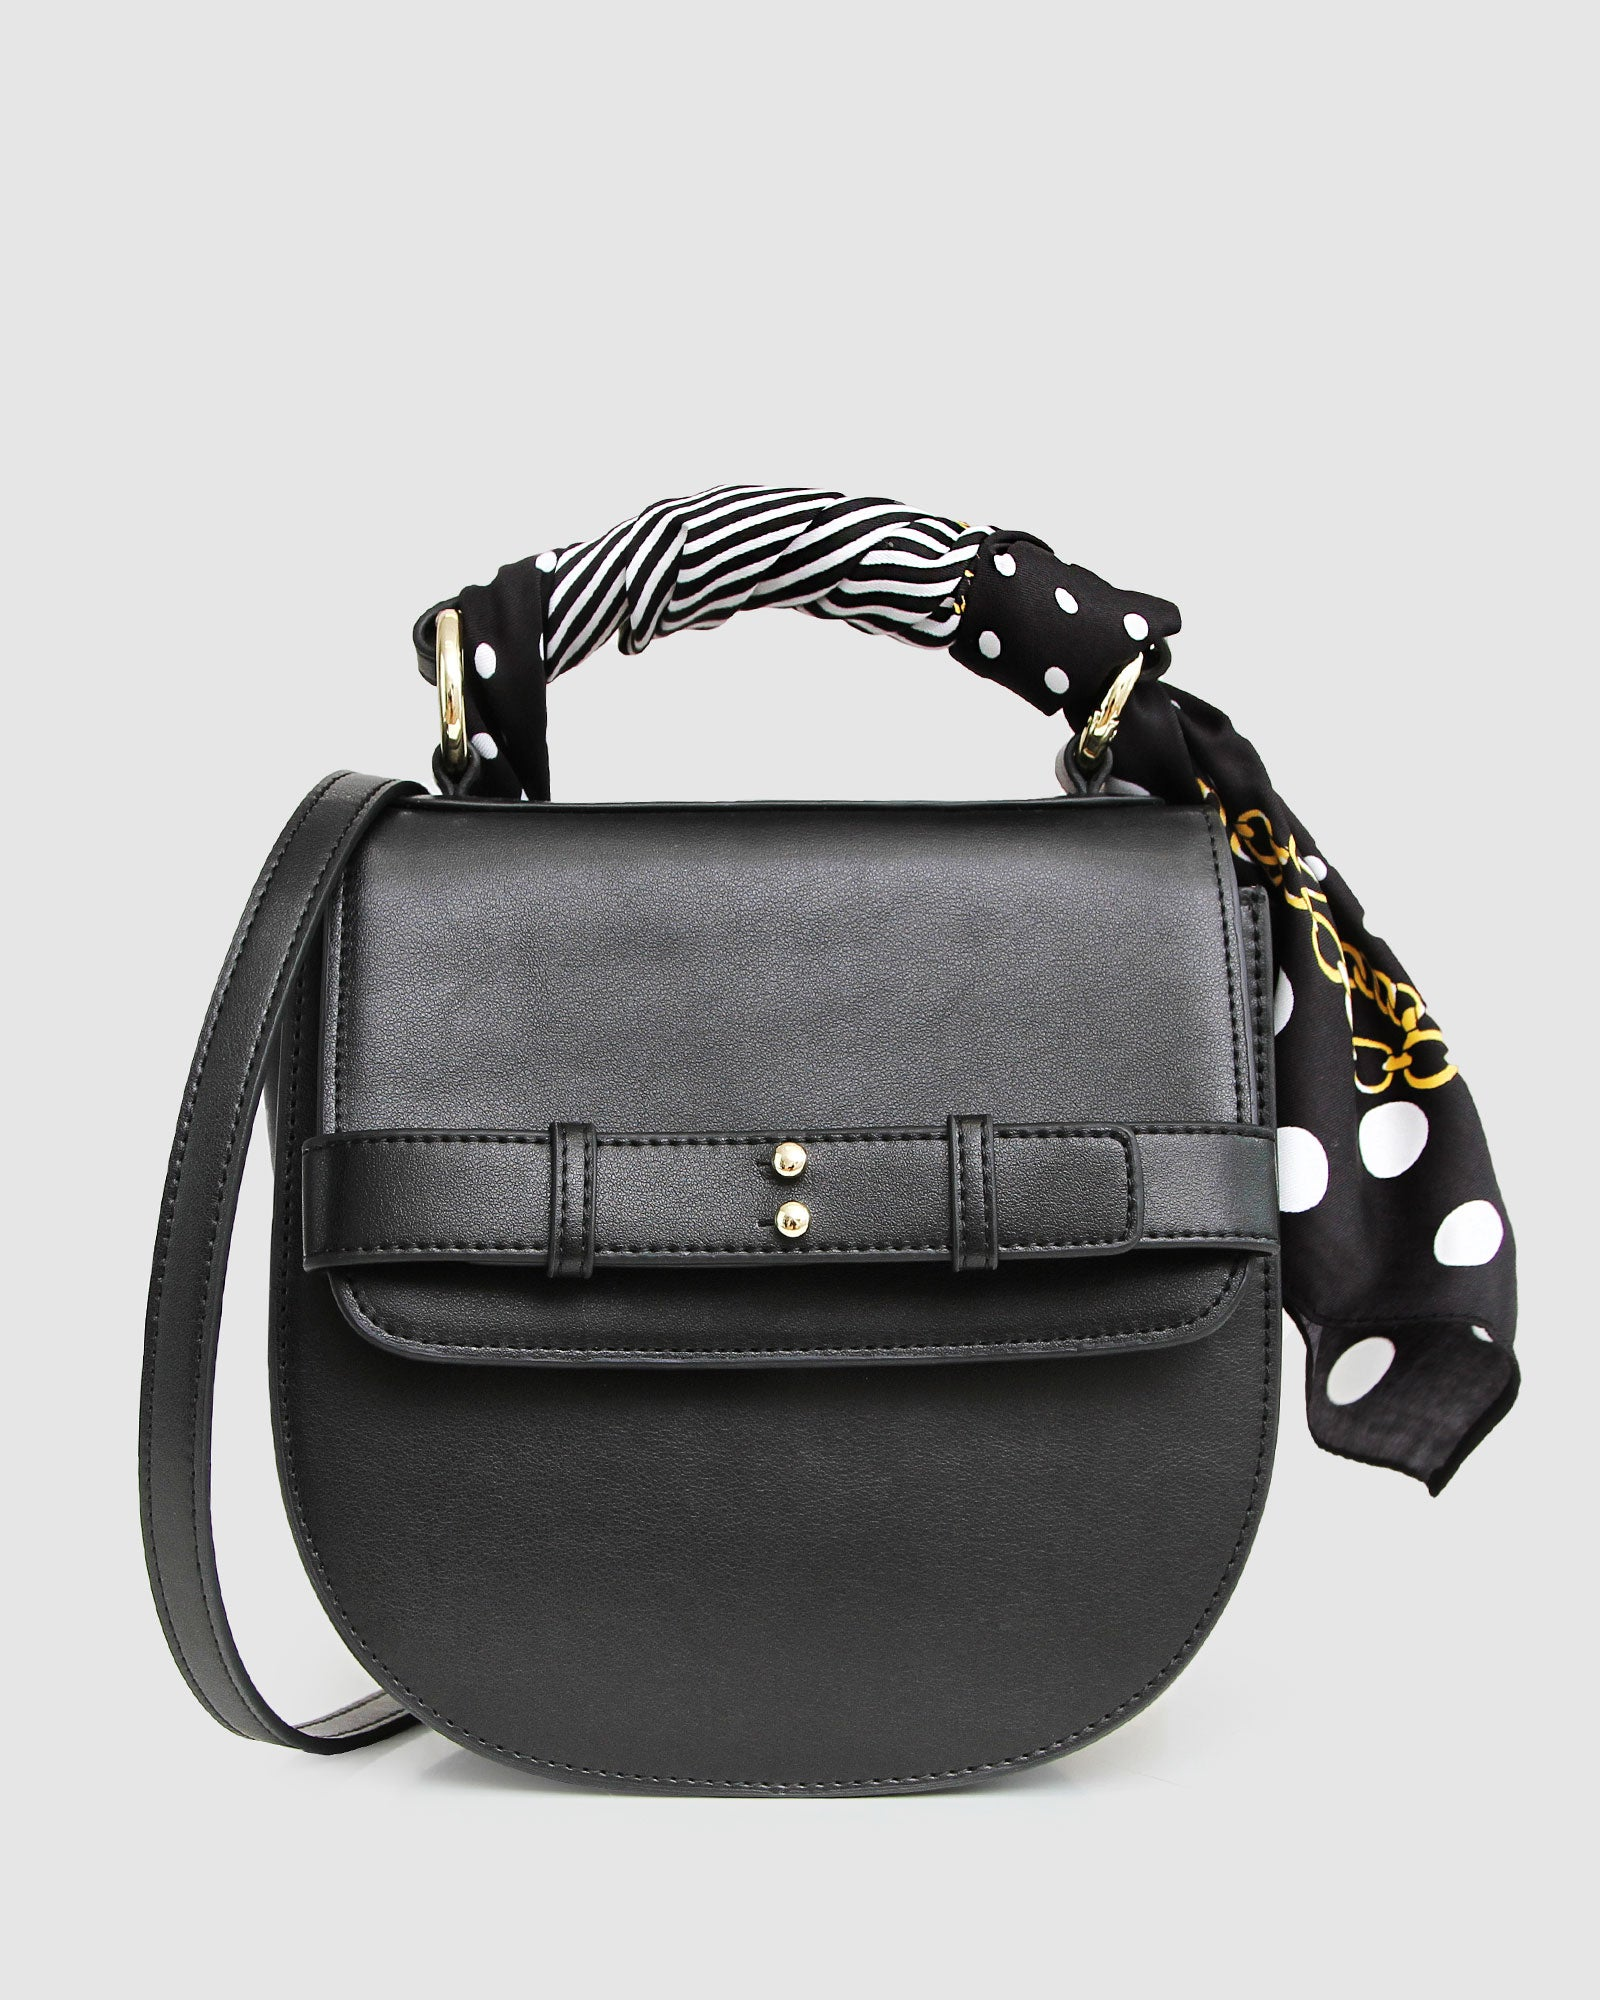 black-leather-bag-cross-body-strap-front-scarf.jpg